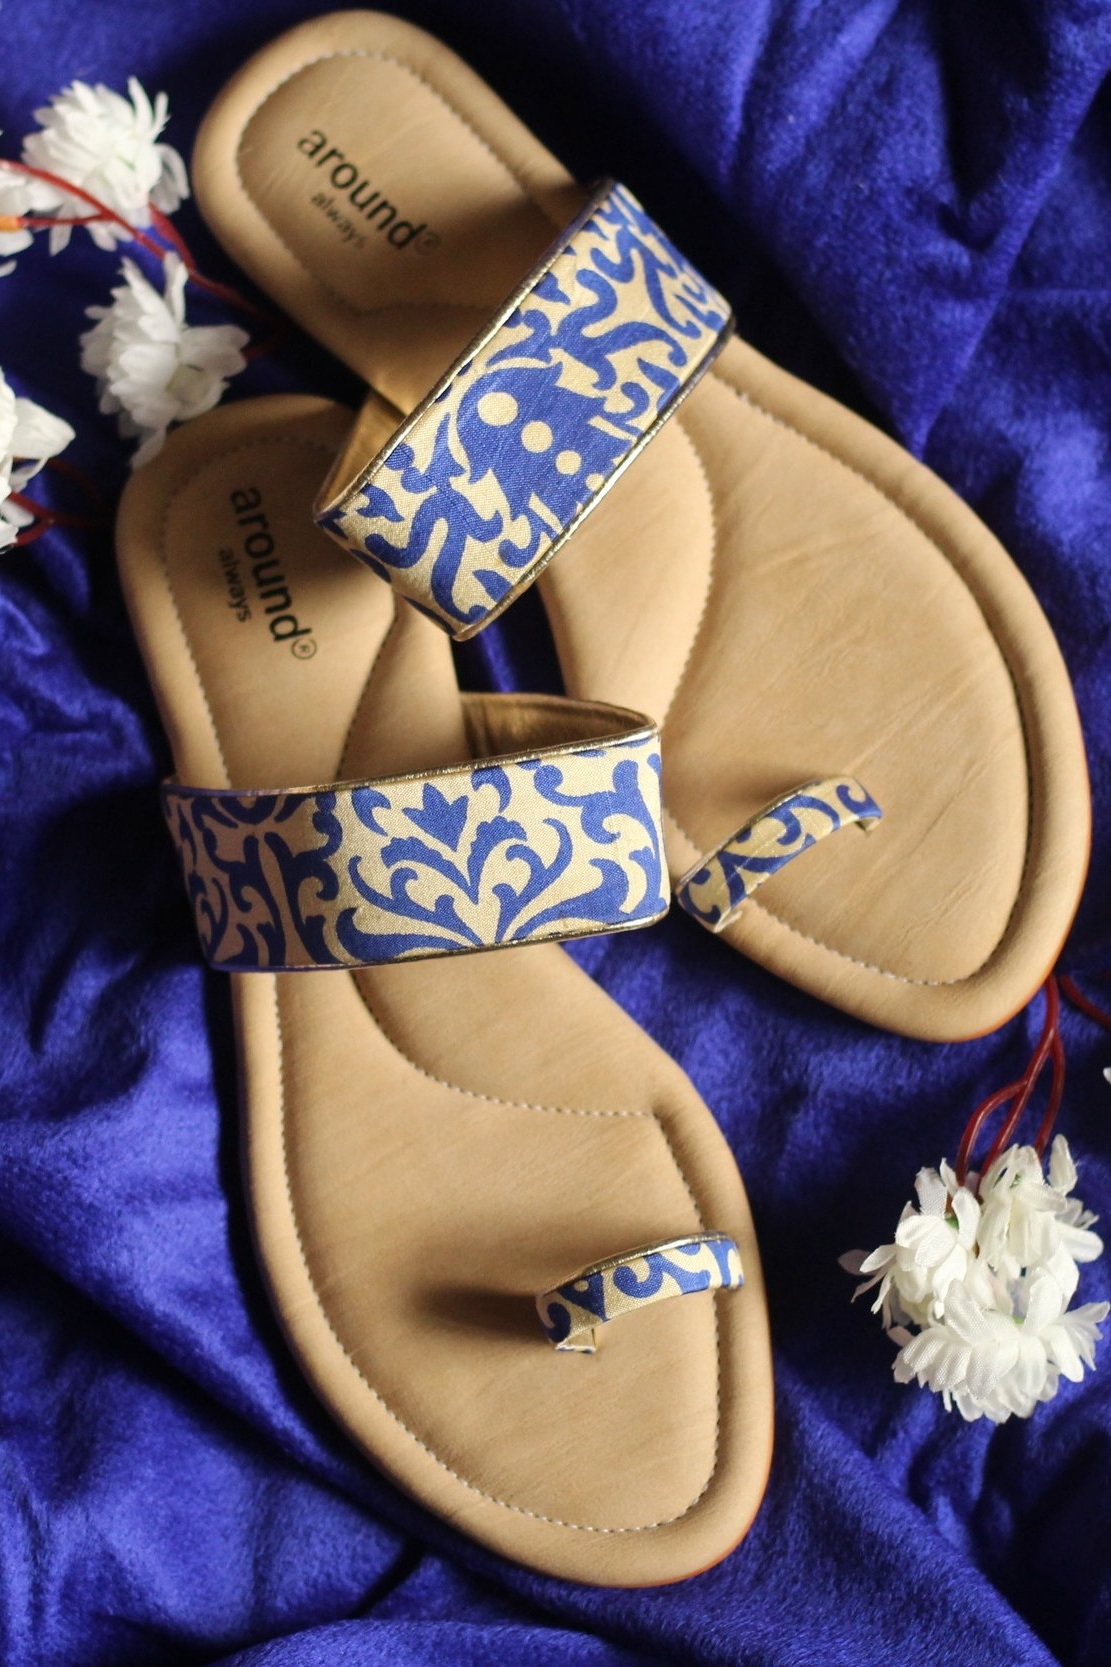 Chappals - With minimal embroidery, clean silhouette and slight touch of metallics, these chappals are perfect for all occassions.